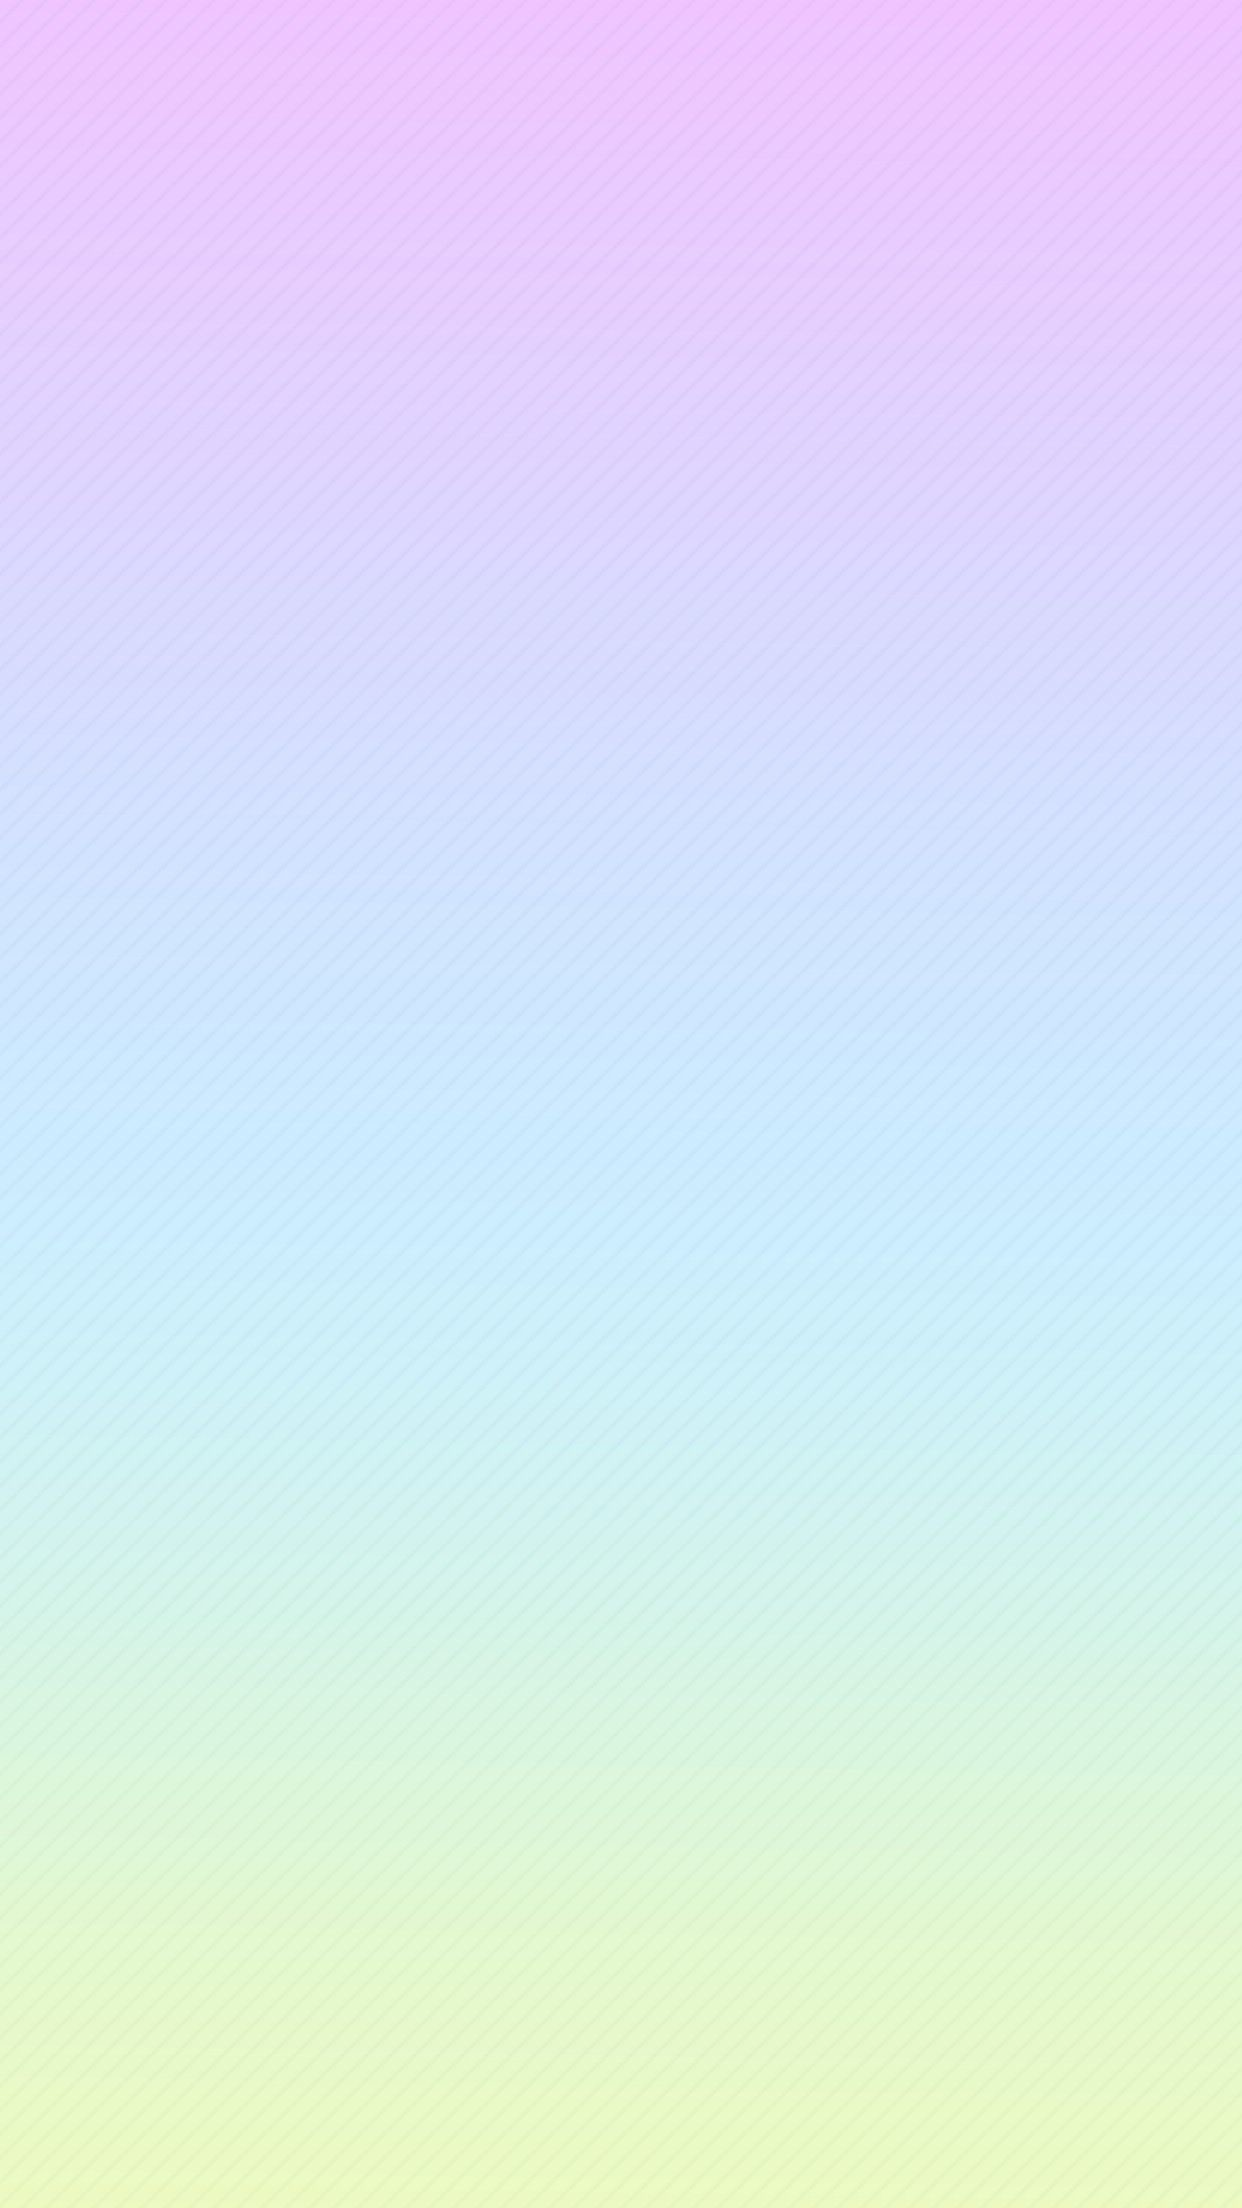 1242x2208 Wallpaper Background Iphone Android Pastel Colors Wallpaper Iphone 1242x2208 Wallpaper Teahub Io